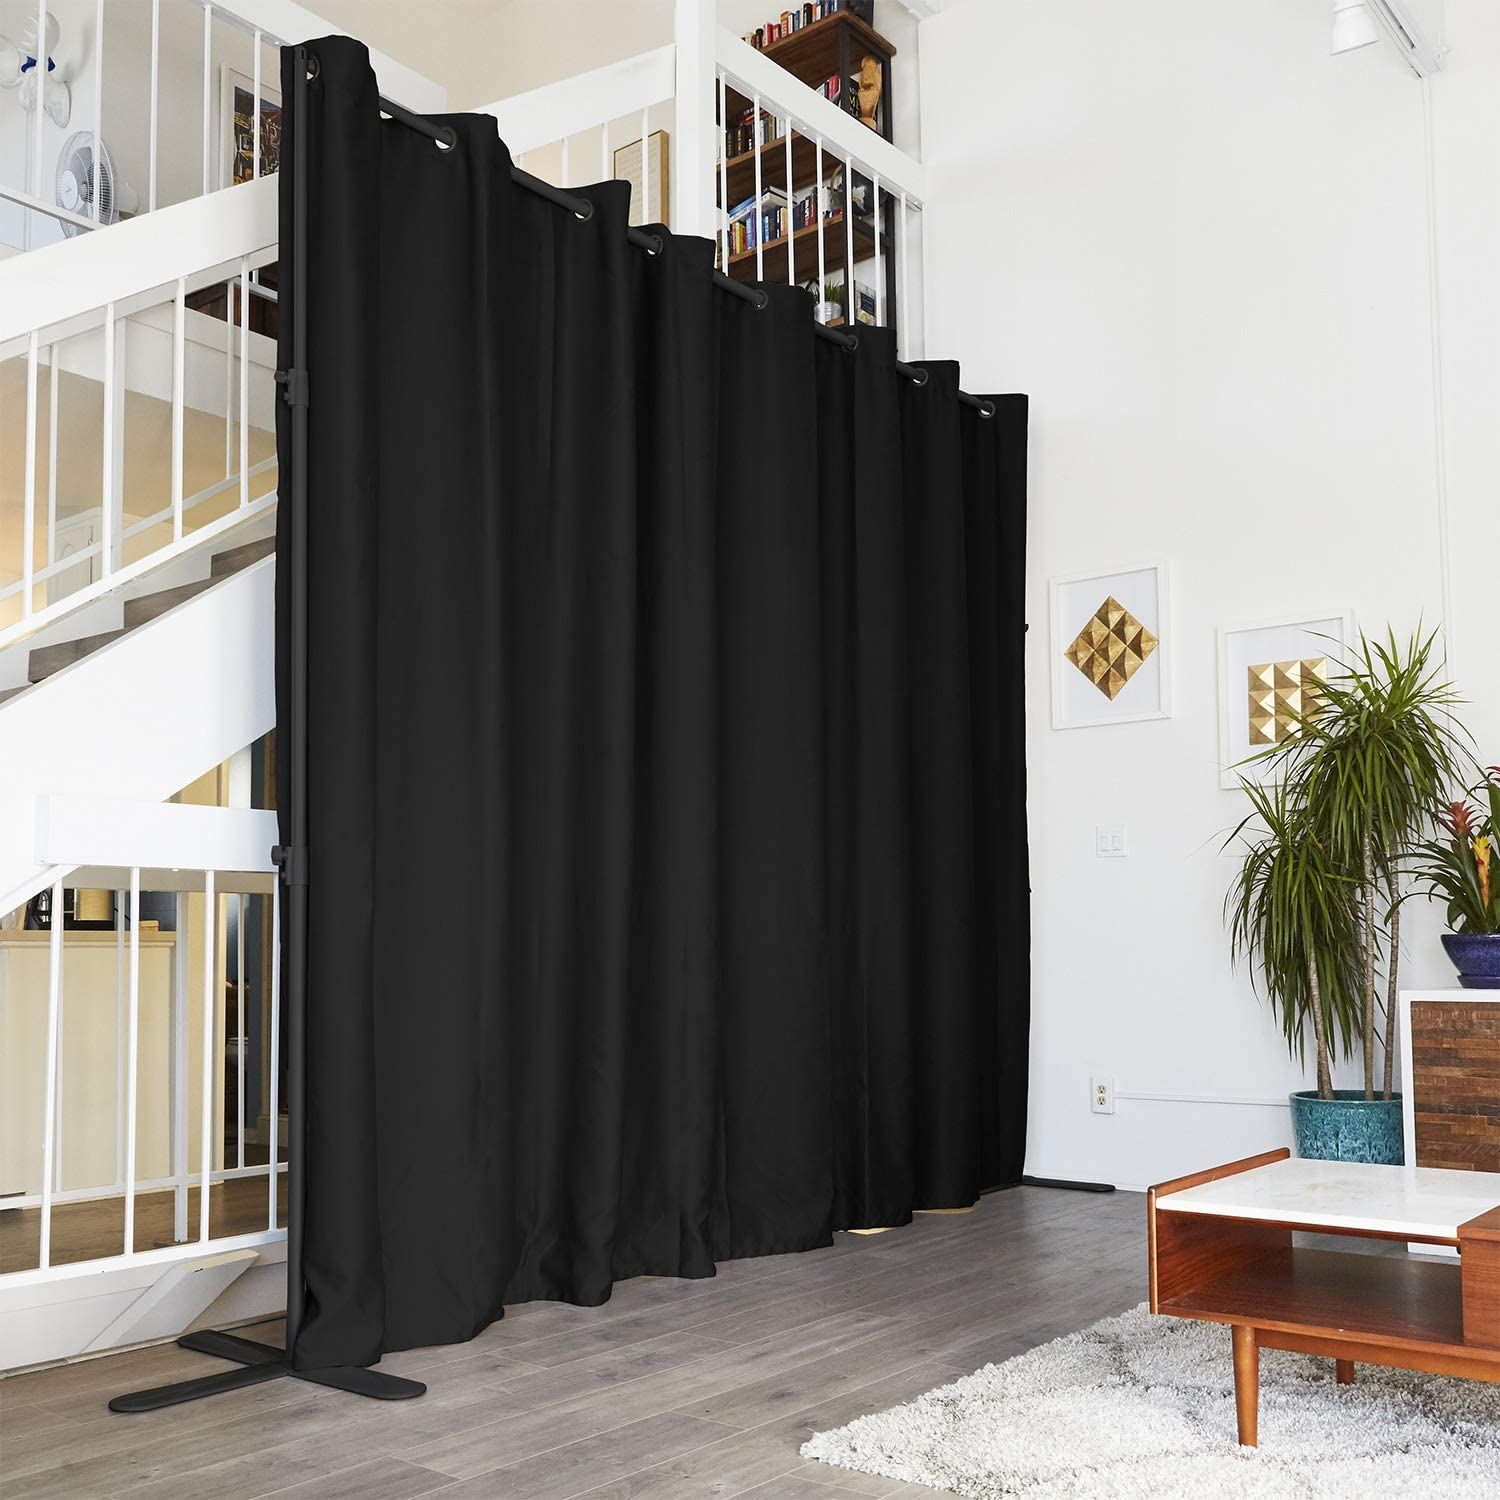 Room/Dividers/Now End2End Room Divider Kit - Small A, 8ft Tall x 5ft - 6ft 8in Wide, Midnight Black